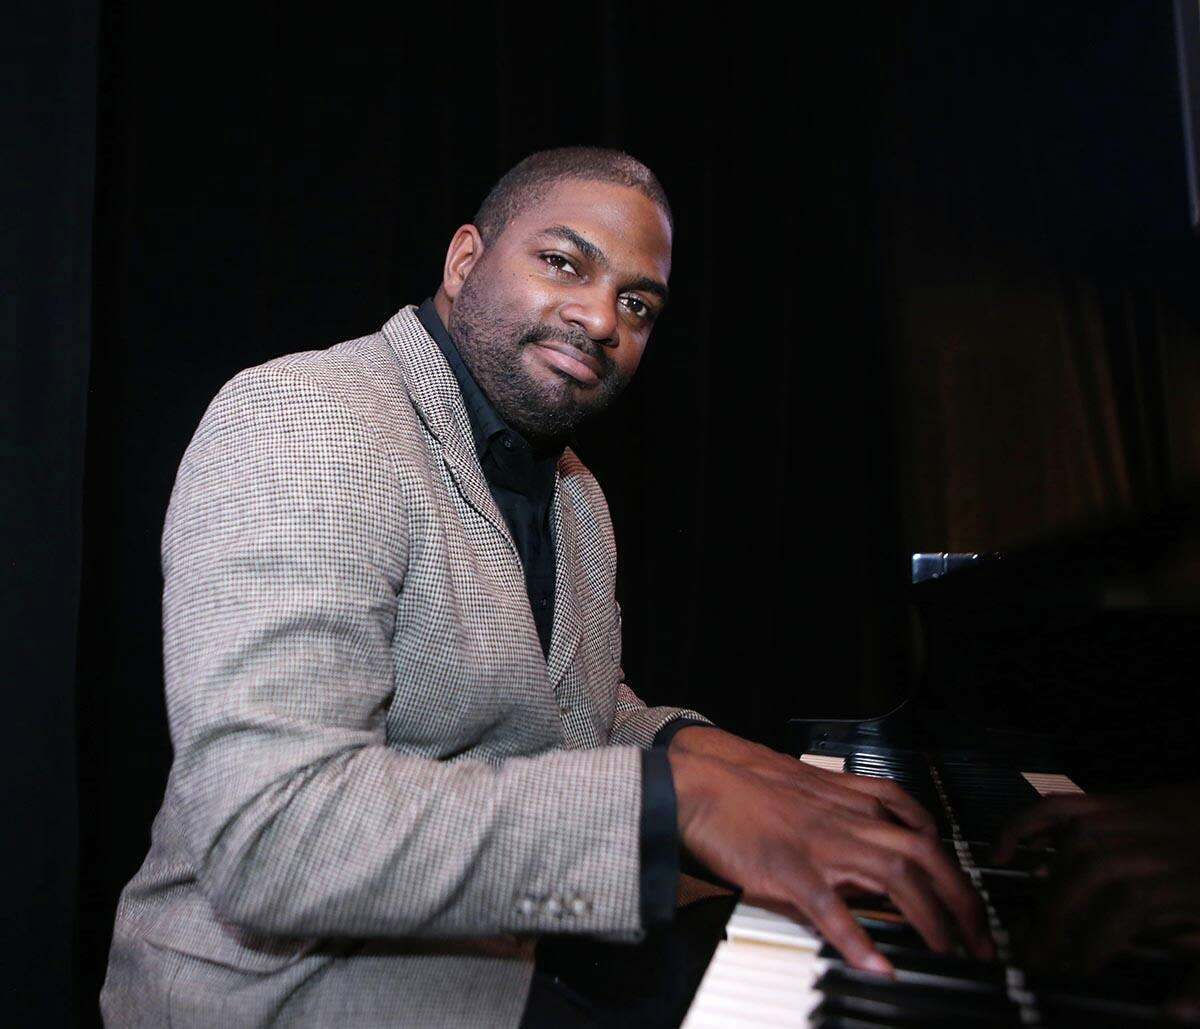 Phillip K. Jones II is scheduled to perform from 2 p.m. to 3 p.m. at an upcoming Market Street Jazz Festival on March 21. A native of Cleveland, Ohio, he grew up playing at his church and in his school's gospel choir before attending the Oberlin Conservatory of Music.